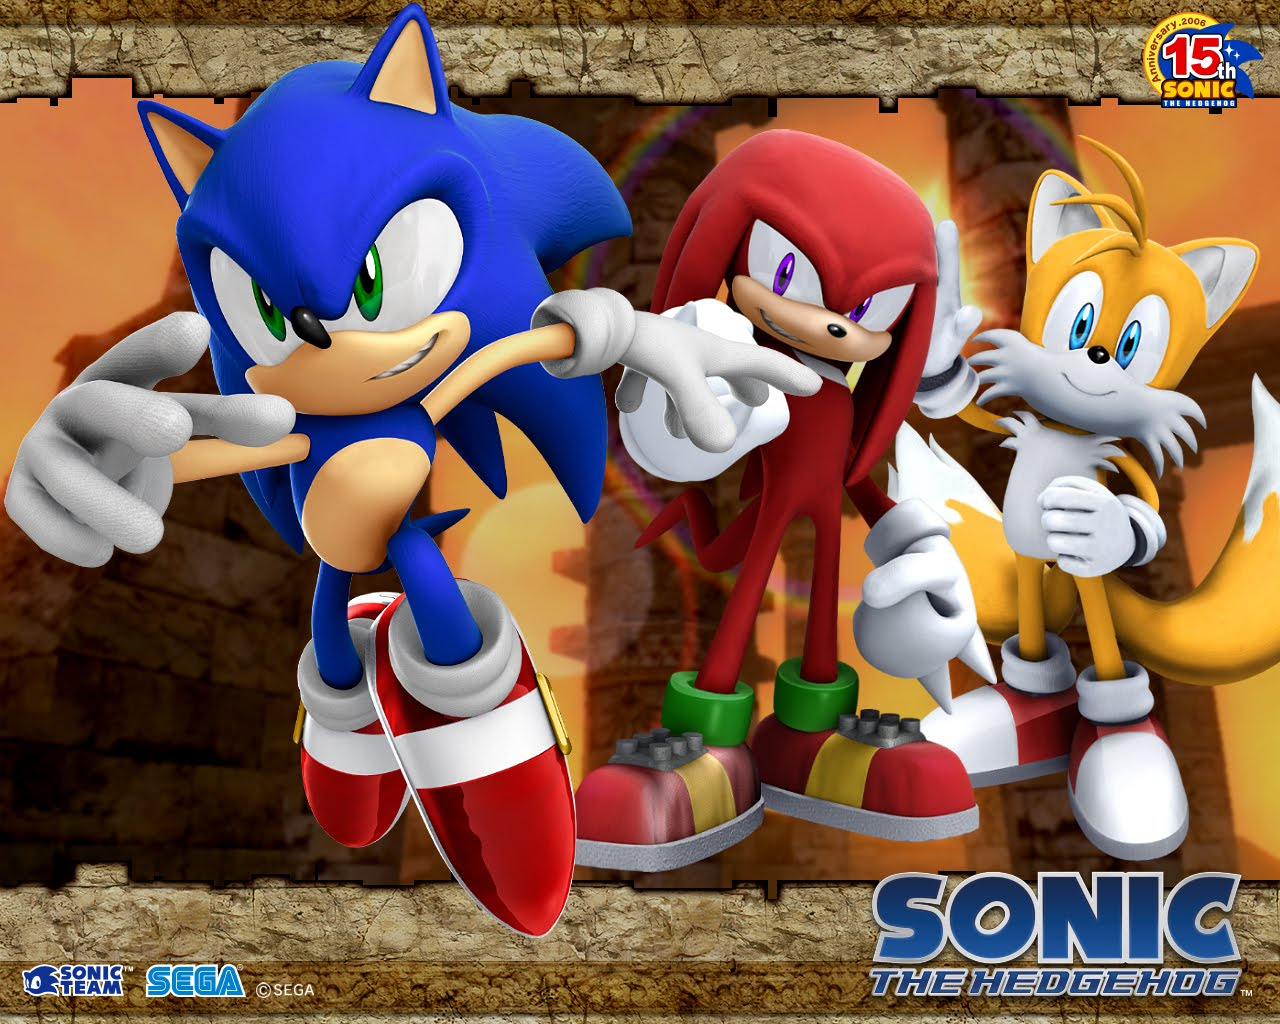 http://2.bp.blogspot.com/-lbZPnequwZE/Tm-Icp3-1VI/AAAAAAAAABA/zIIeGuSqho0/s1600/wallpapaer-sonic-the-hedgehog-02.jpg